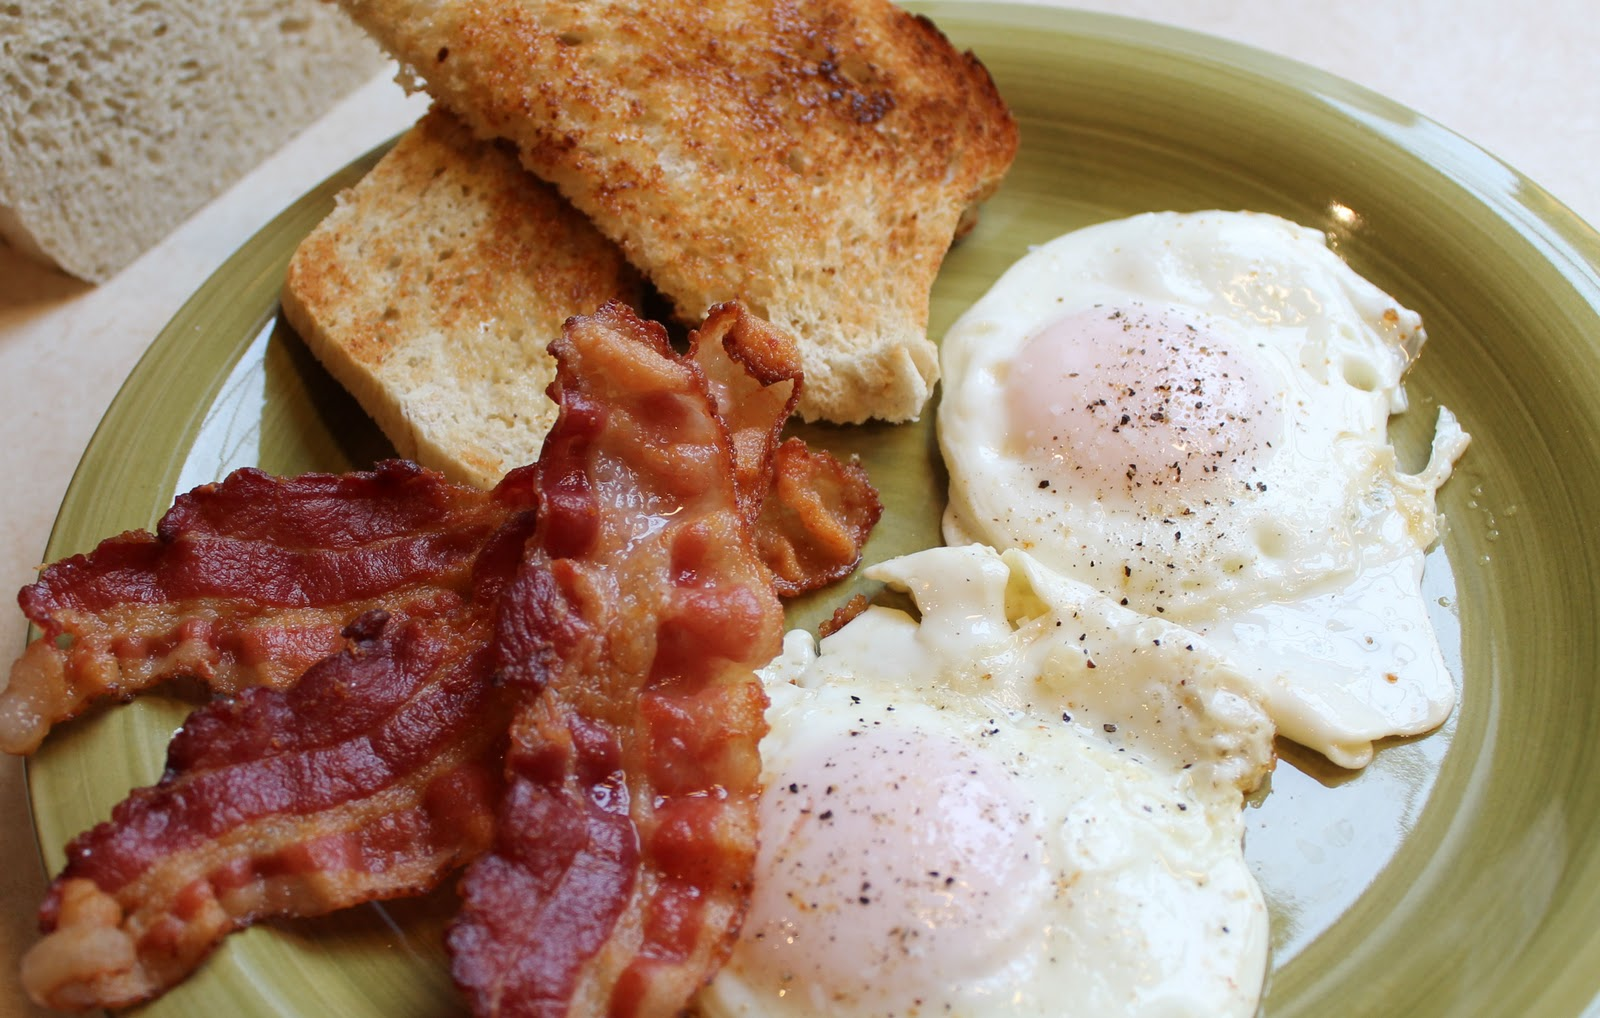 Bacon is a staple of the great aussie breakkie